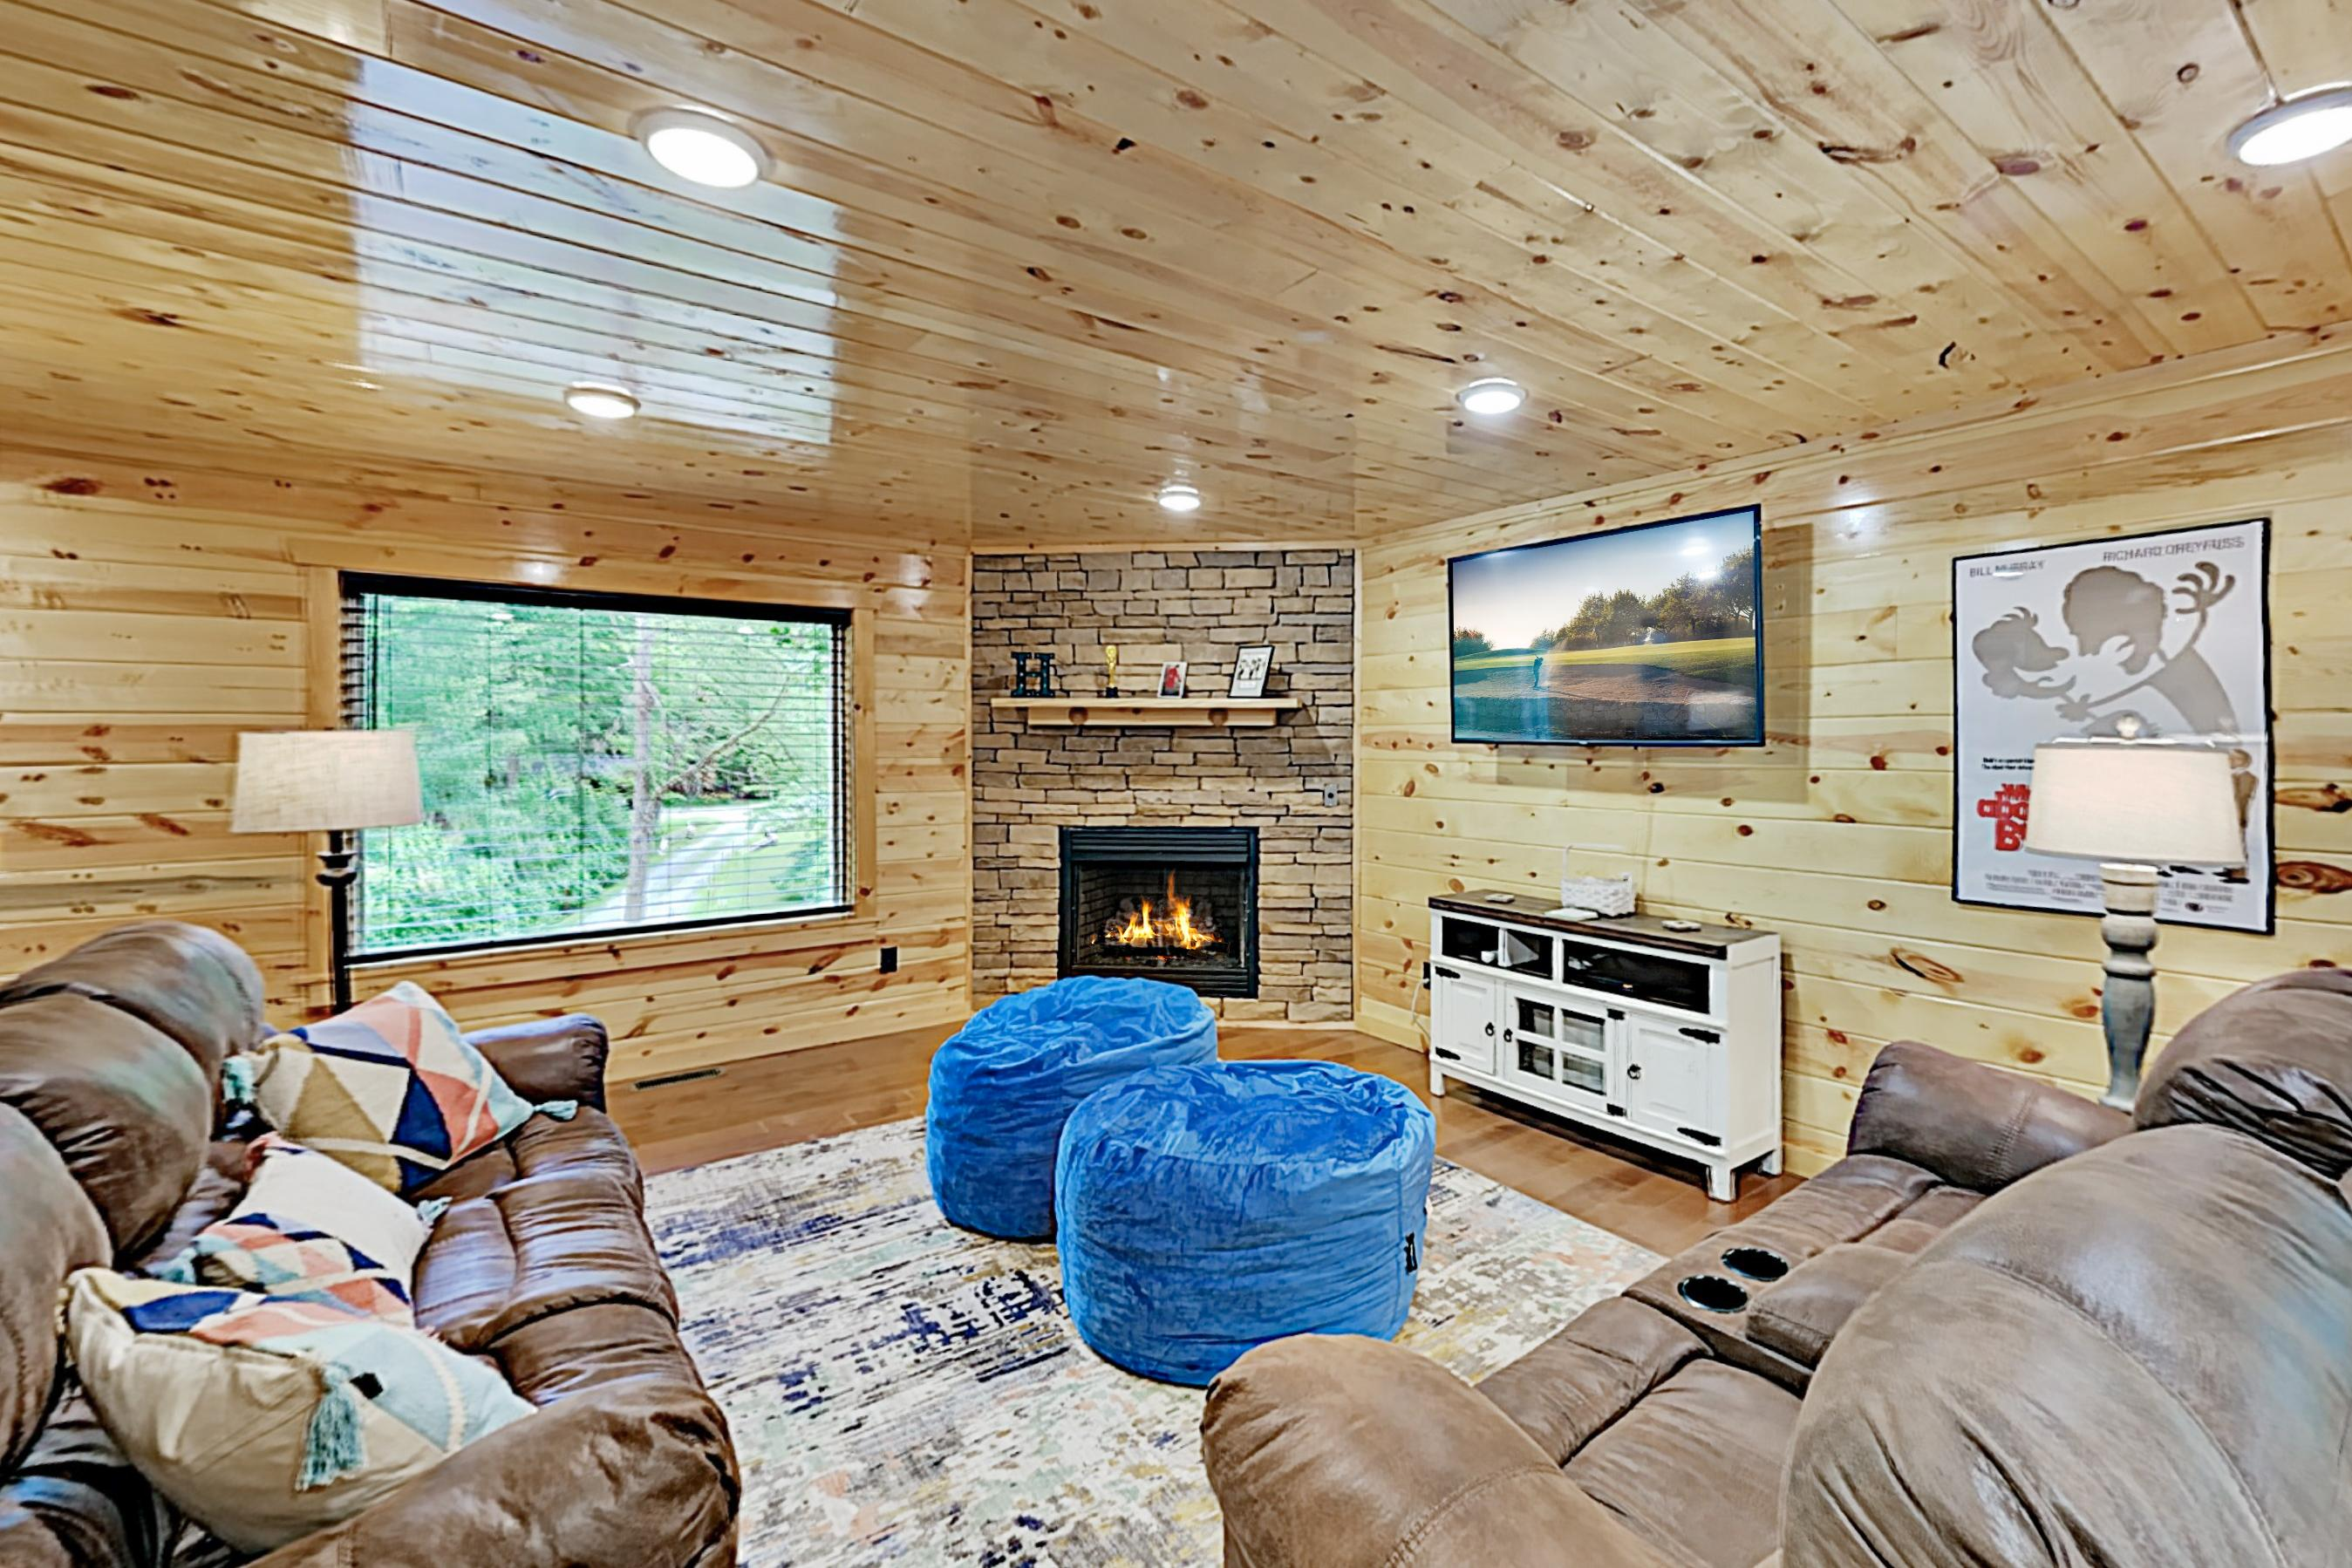 Property Image 1 - Serenity Now Cabin with Hot Tub, Games and Forest View